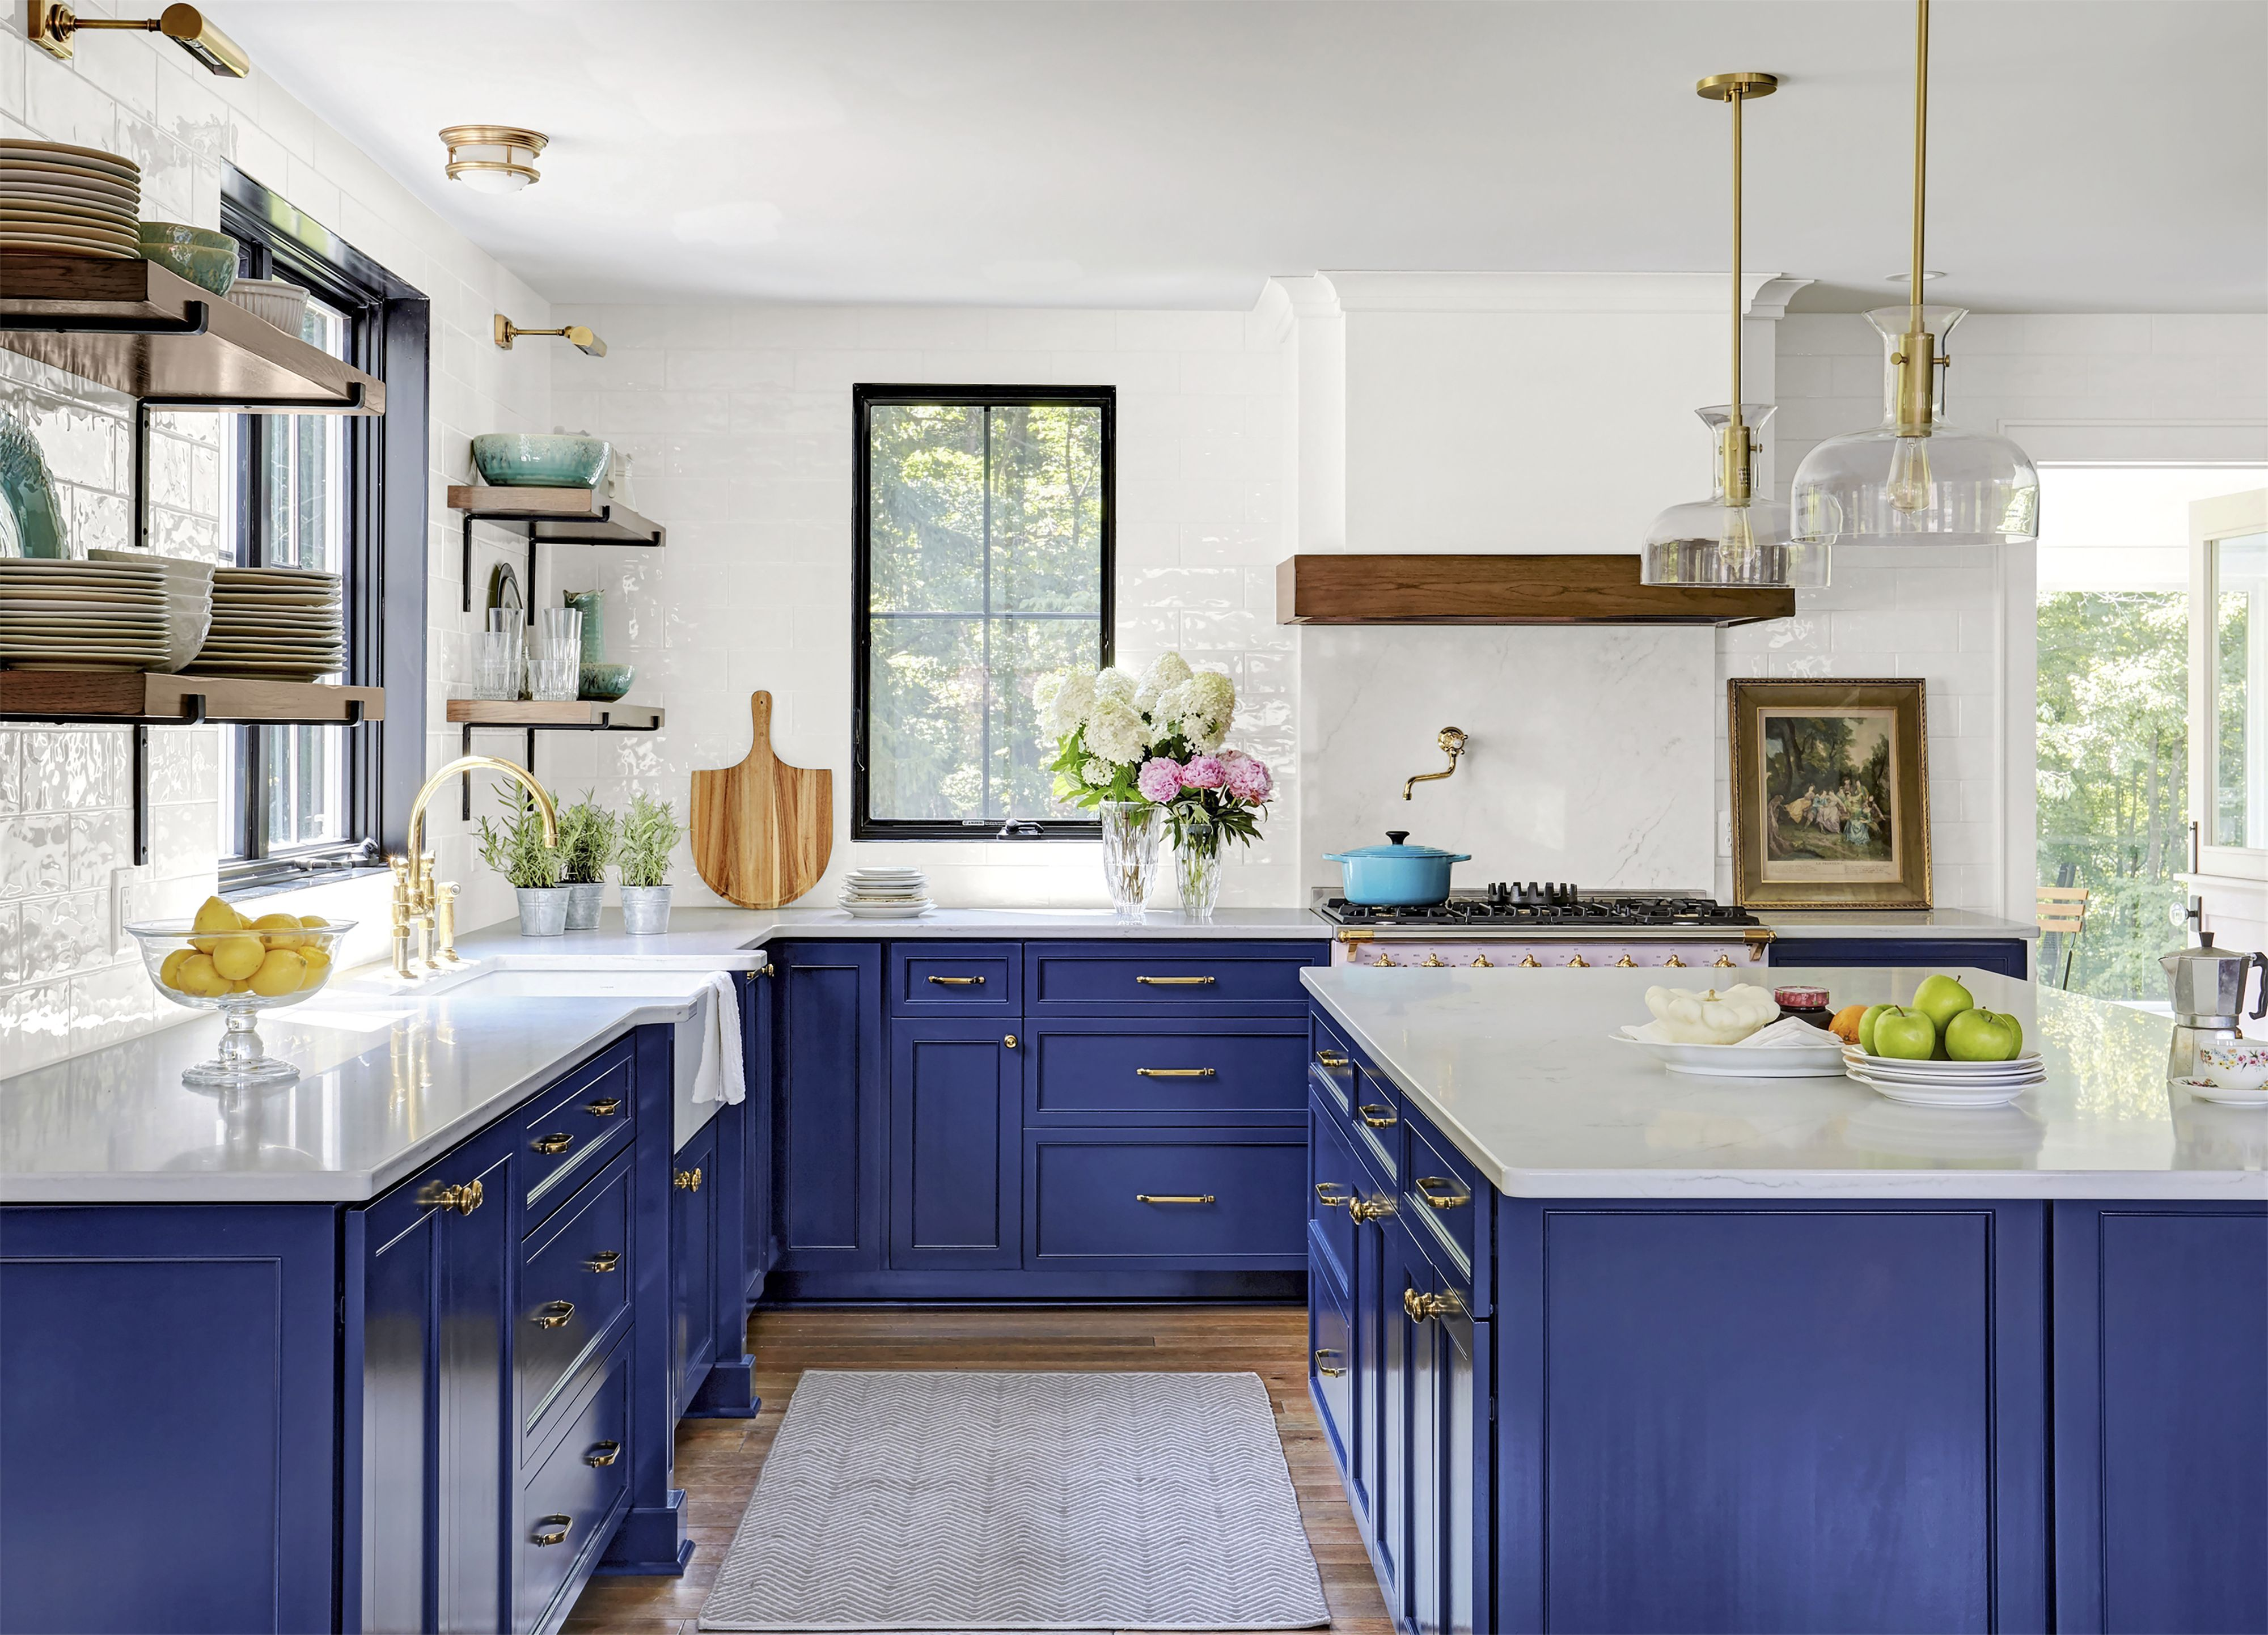 home decor trends 2020 - colored cabinets